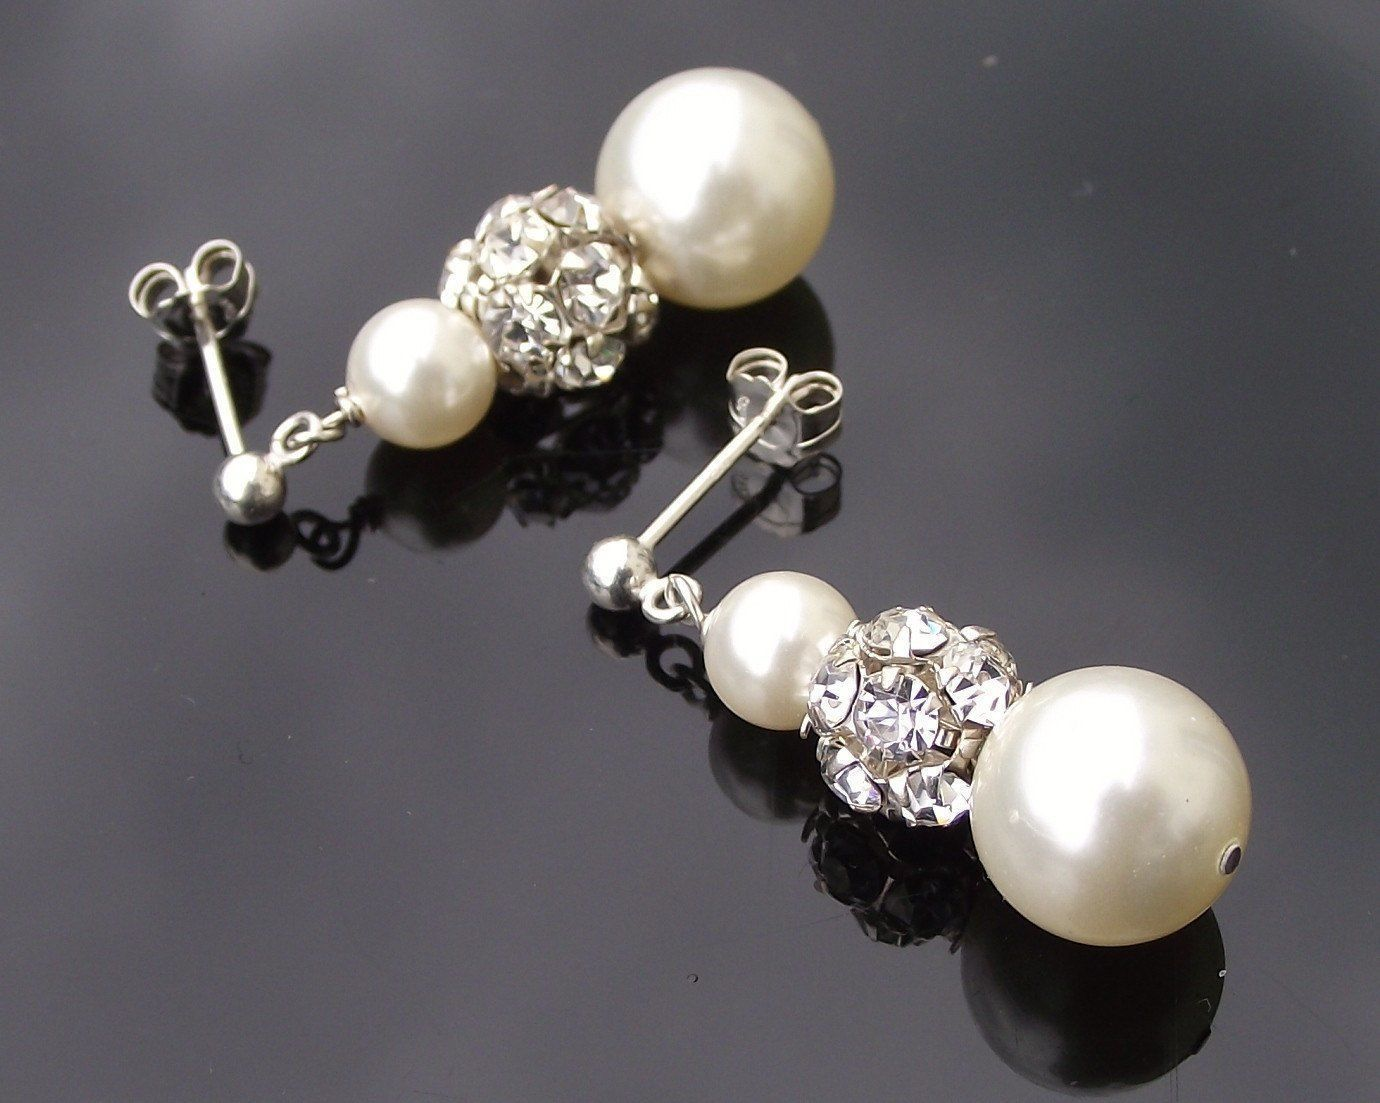 Wedding Earrings - Swarovski Pearl & Crystal Drop Earrings, Loretta